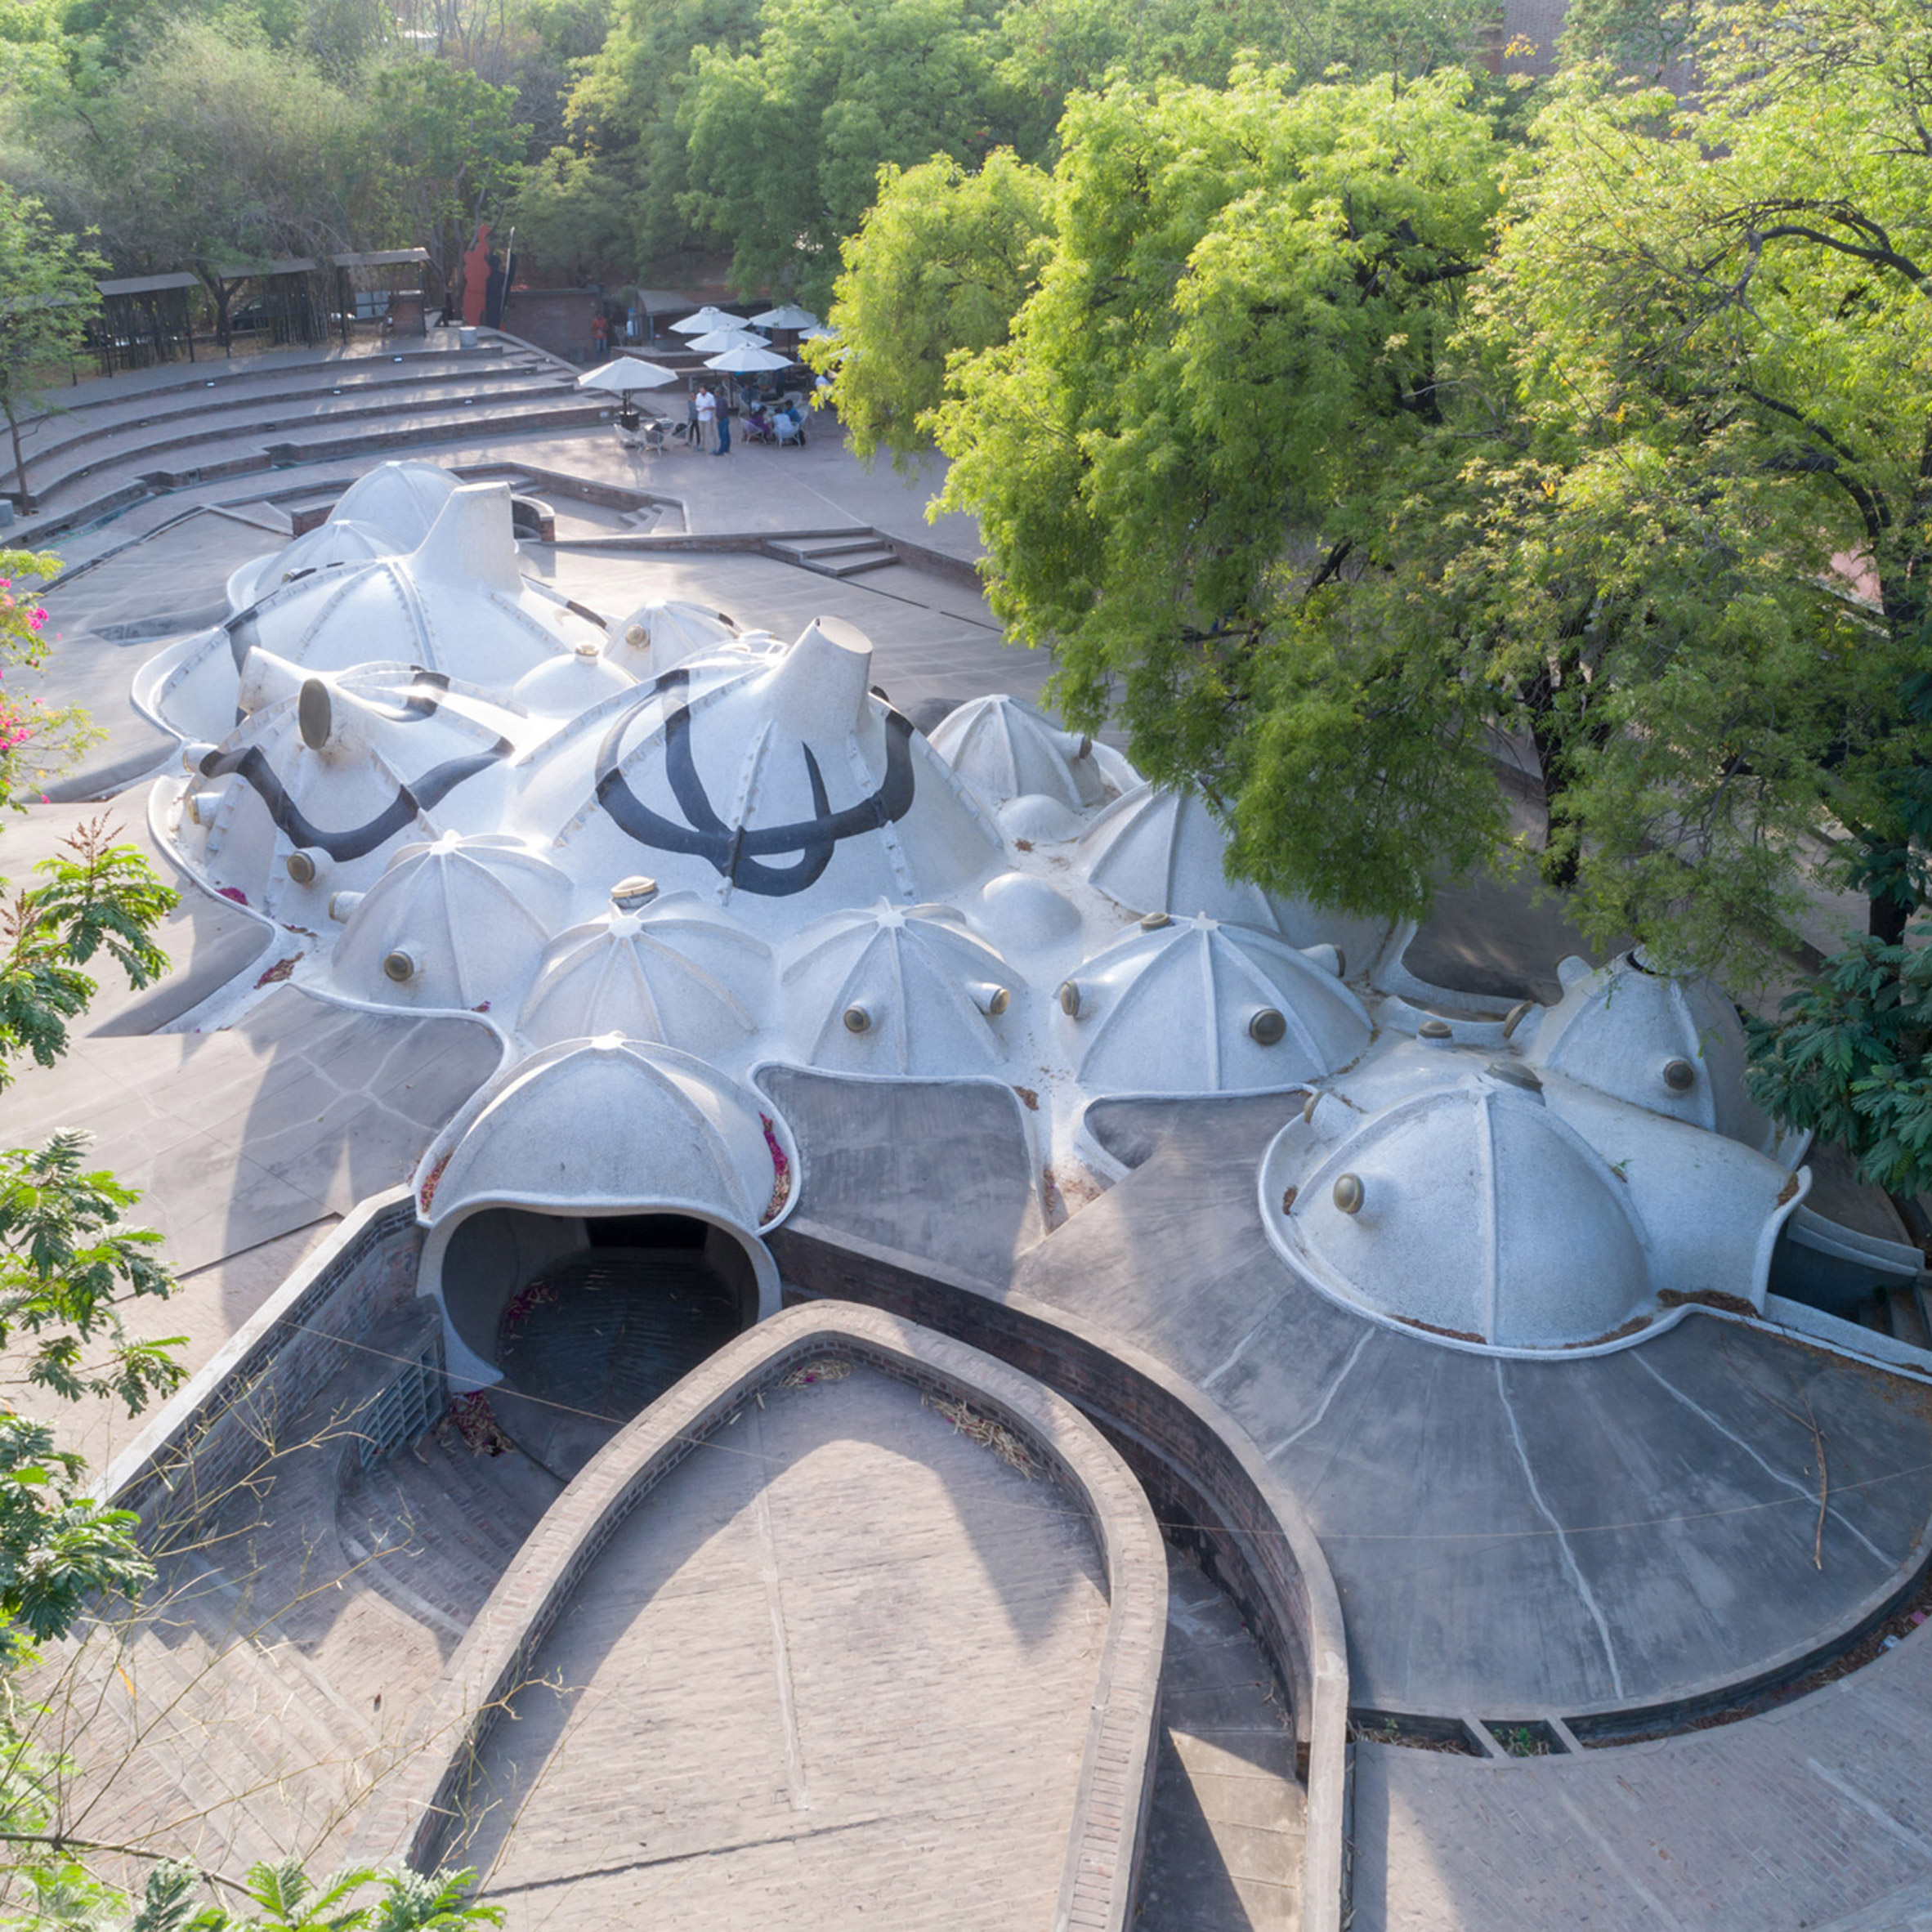 Exhibitions guide 2019 Balkrishna Doshi: Architecture for the People Vitra Design Museum